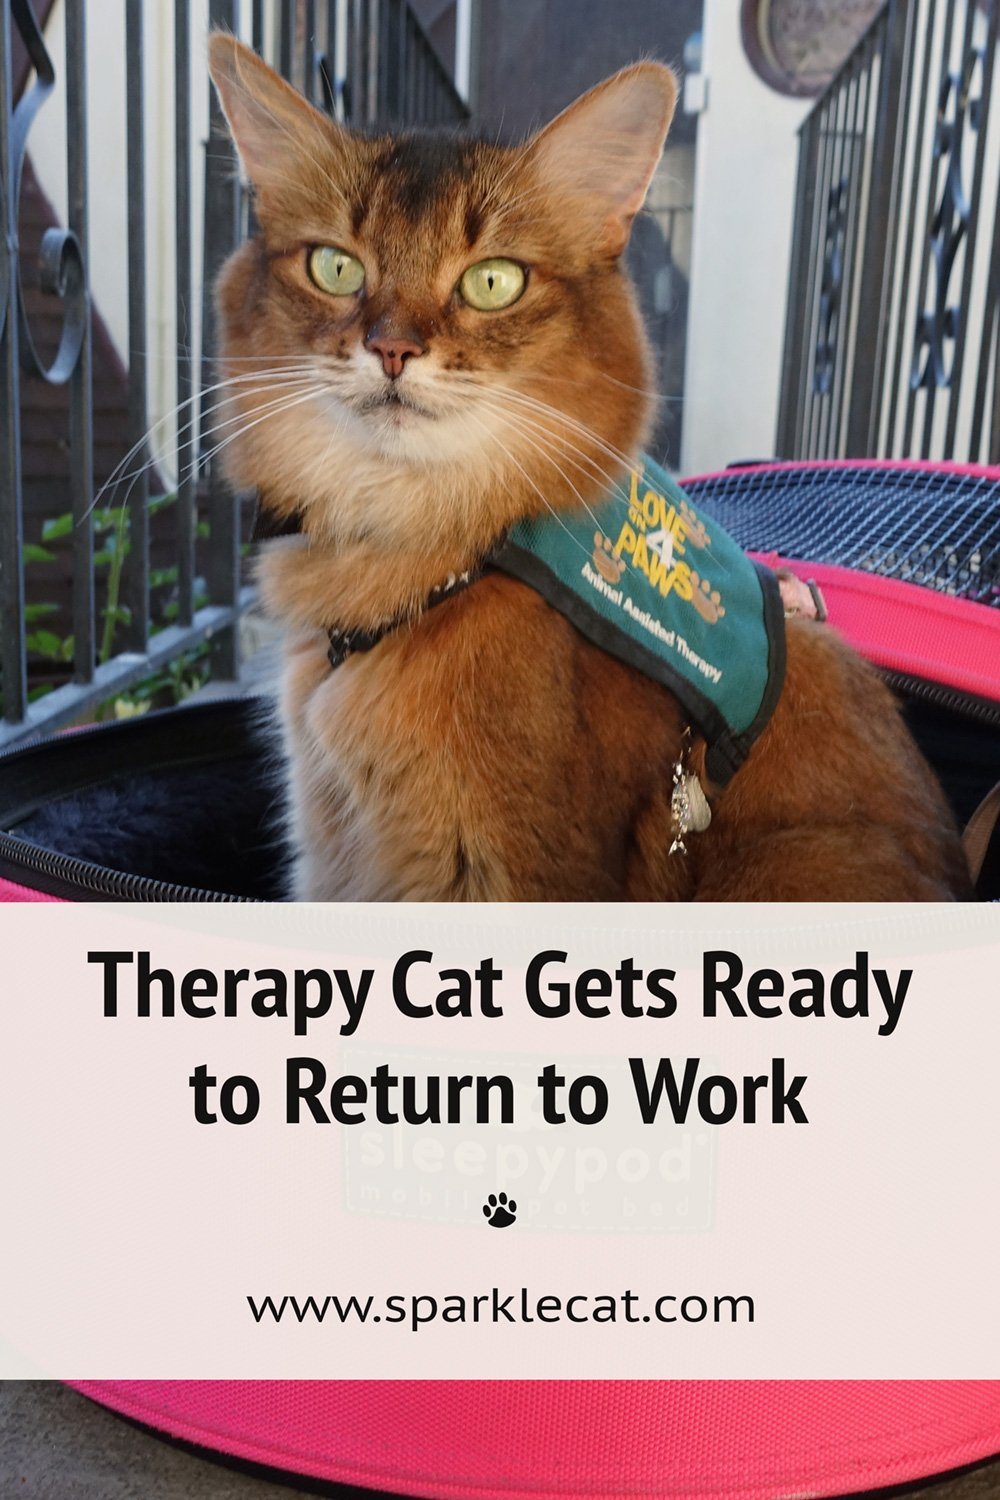 Preparing for My Therapy Cat Return - on Video!